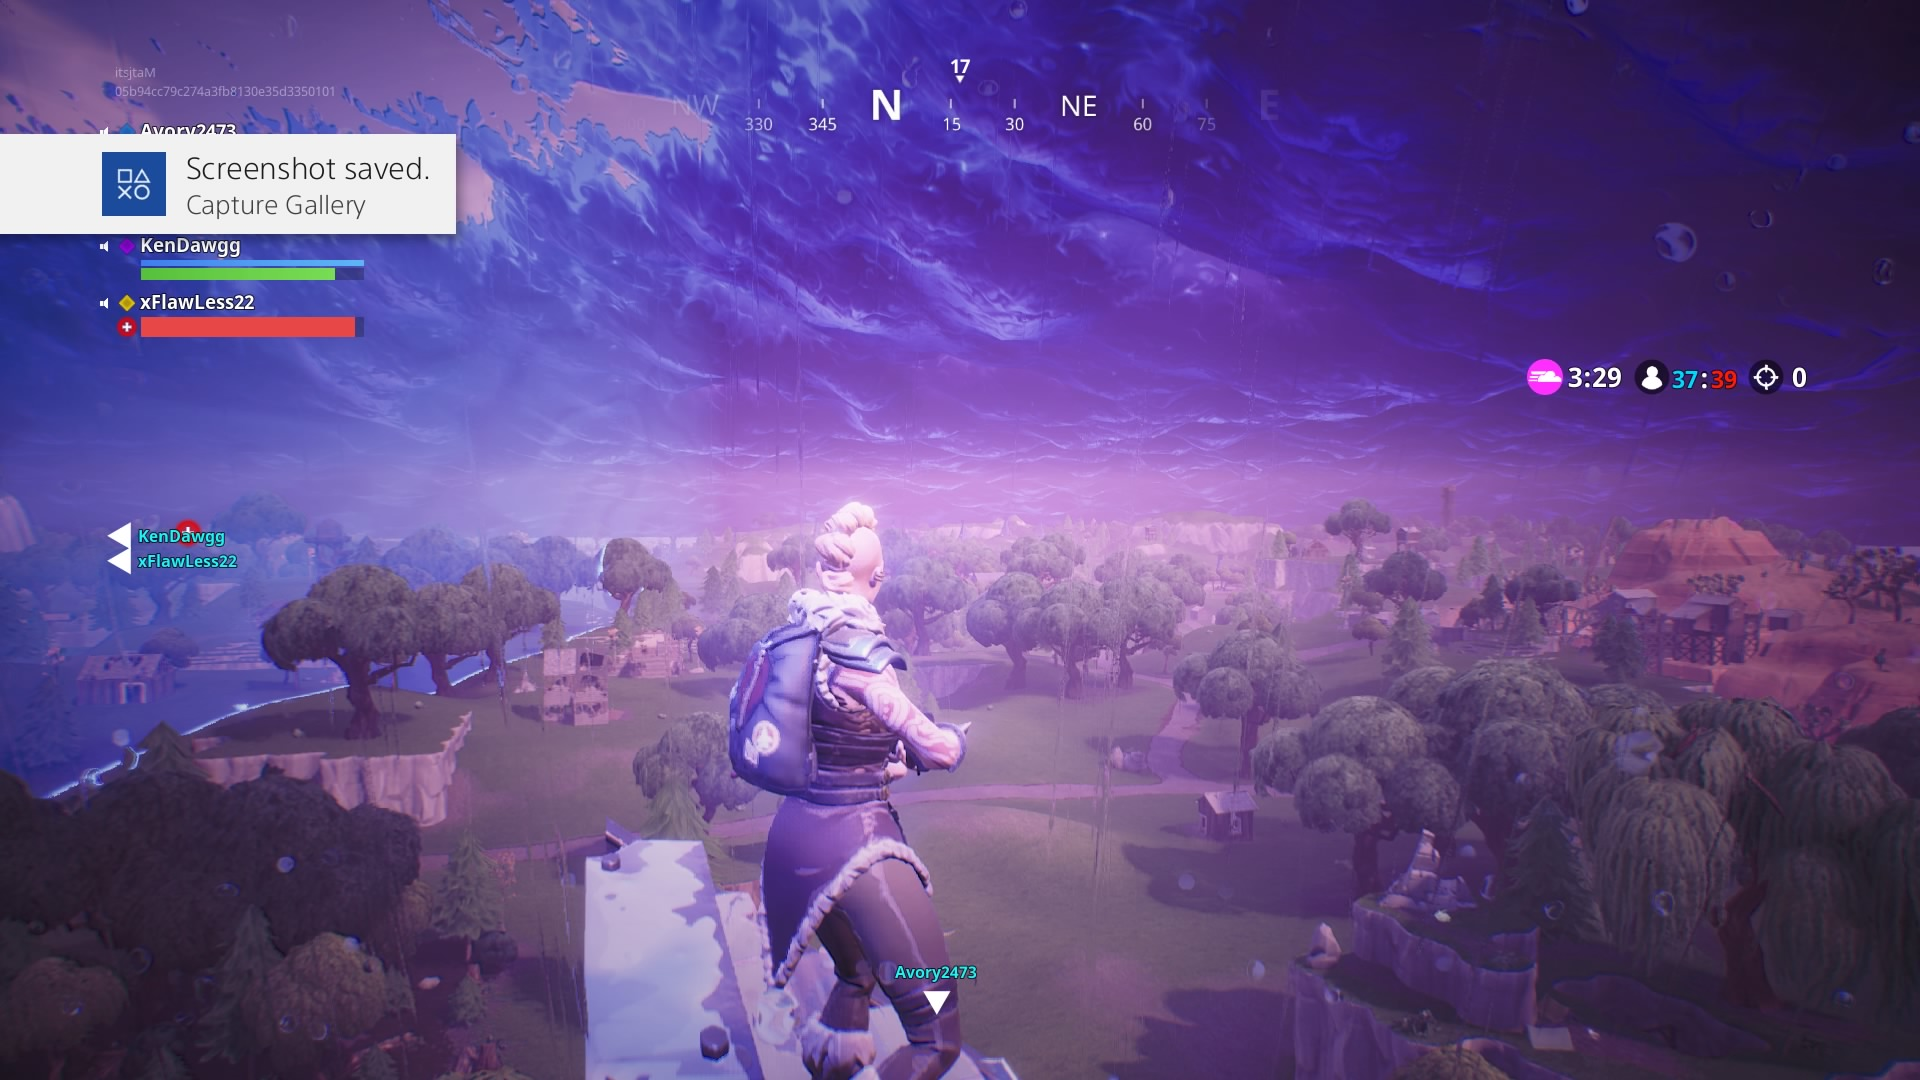 Fortnite paradise palms storm widescreen computer - Fortnite save the world wallpaper ...